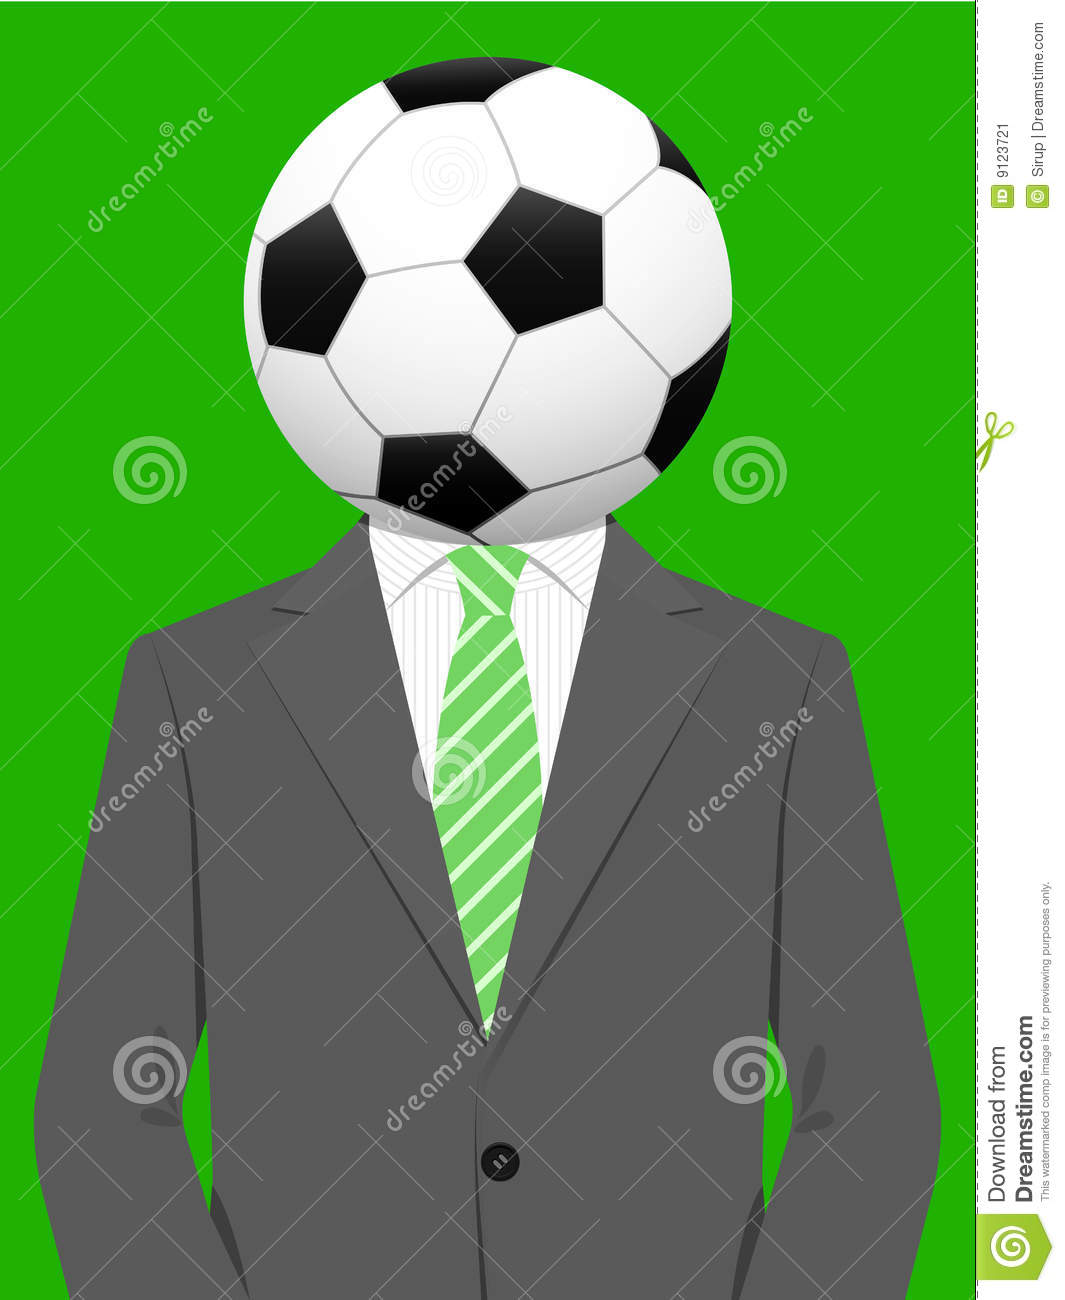 business man with soccer ball head stock vector